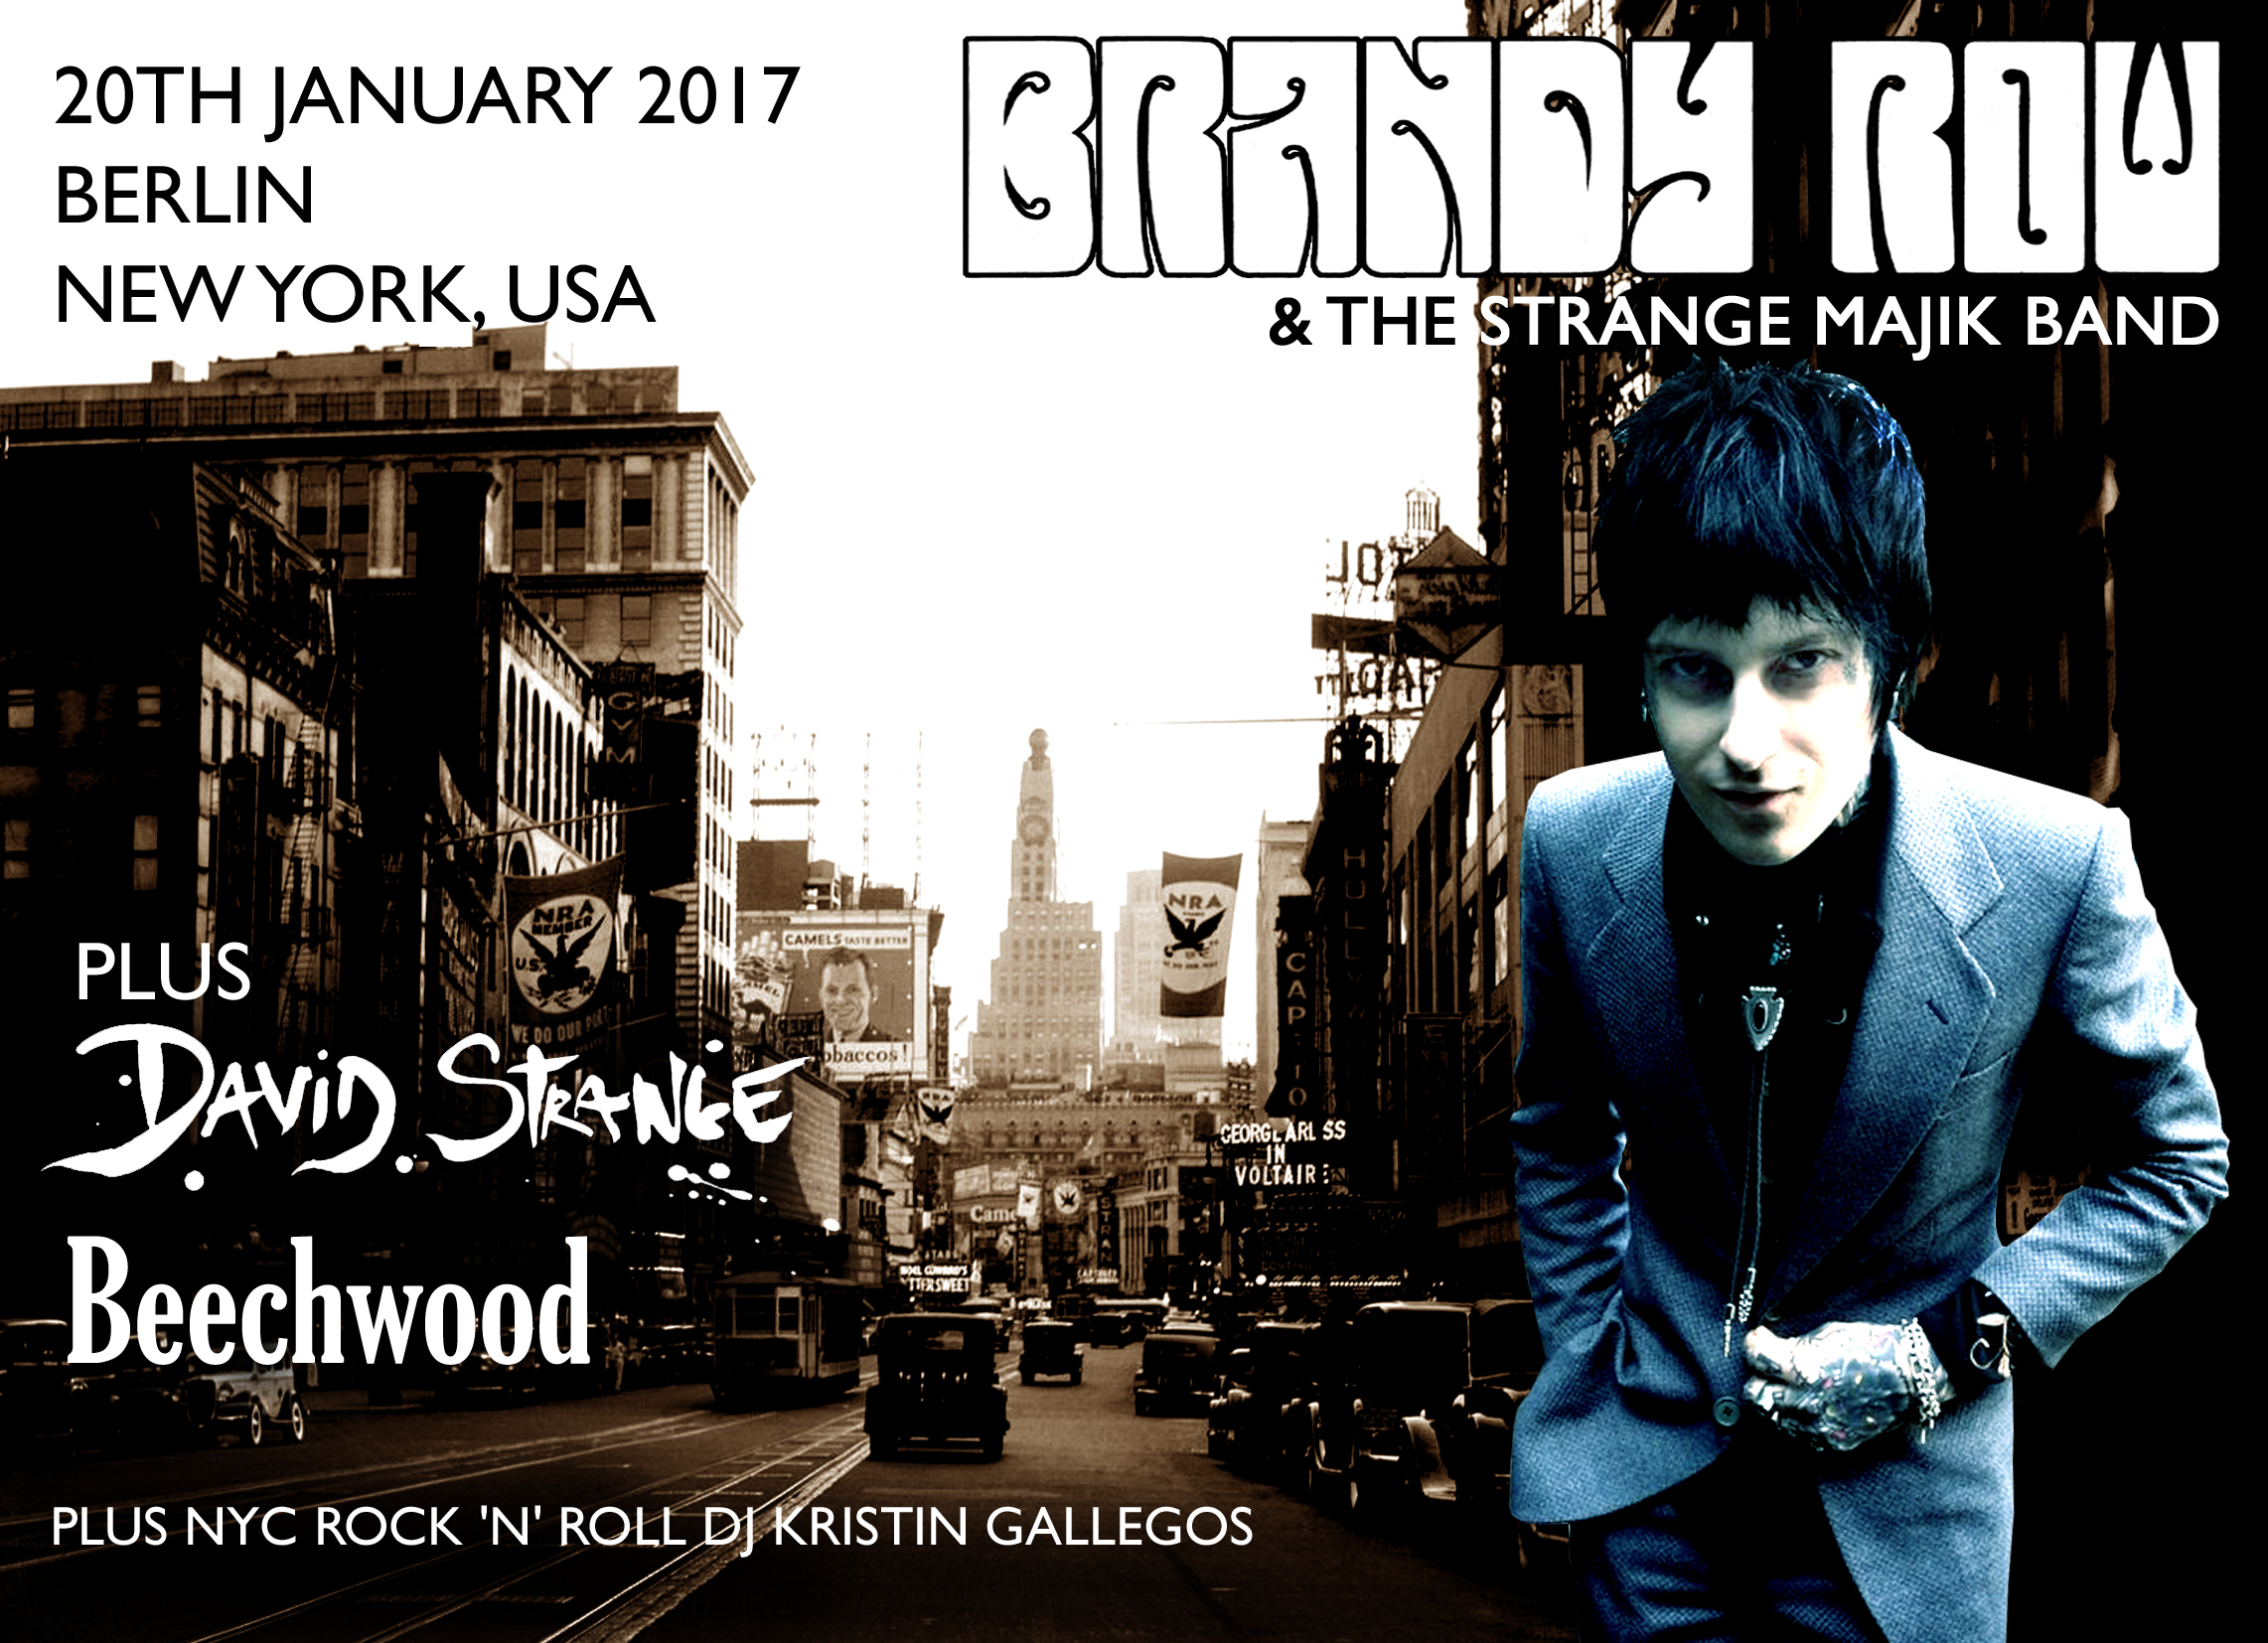 The line up is complete for the 20th Jan In NYC!